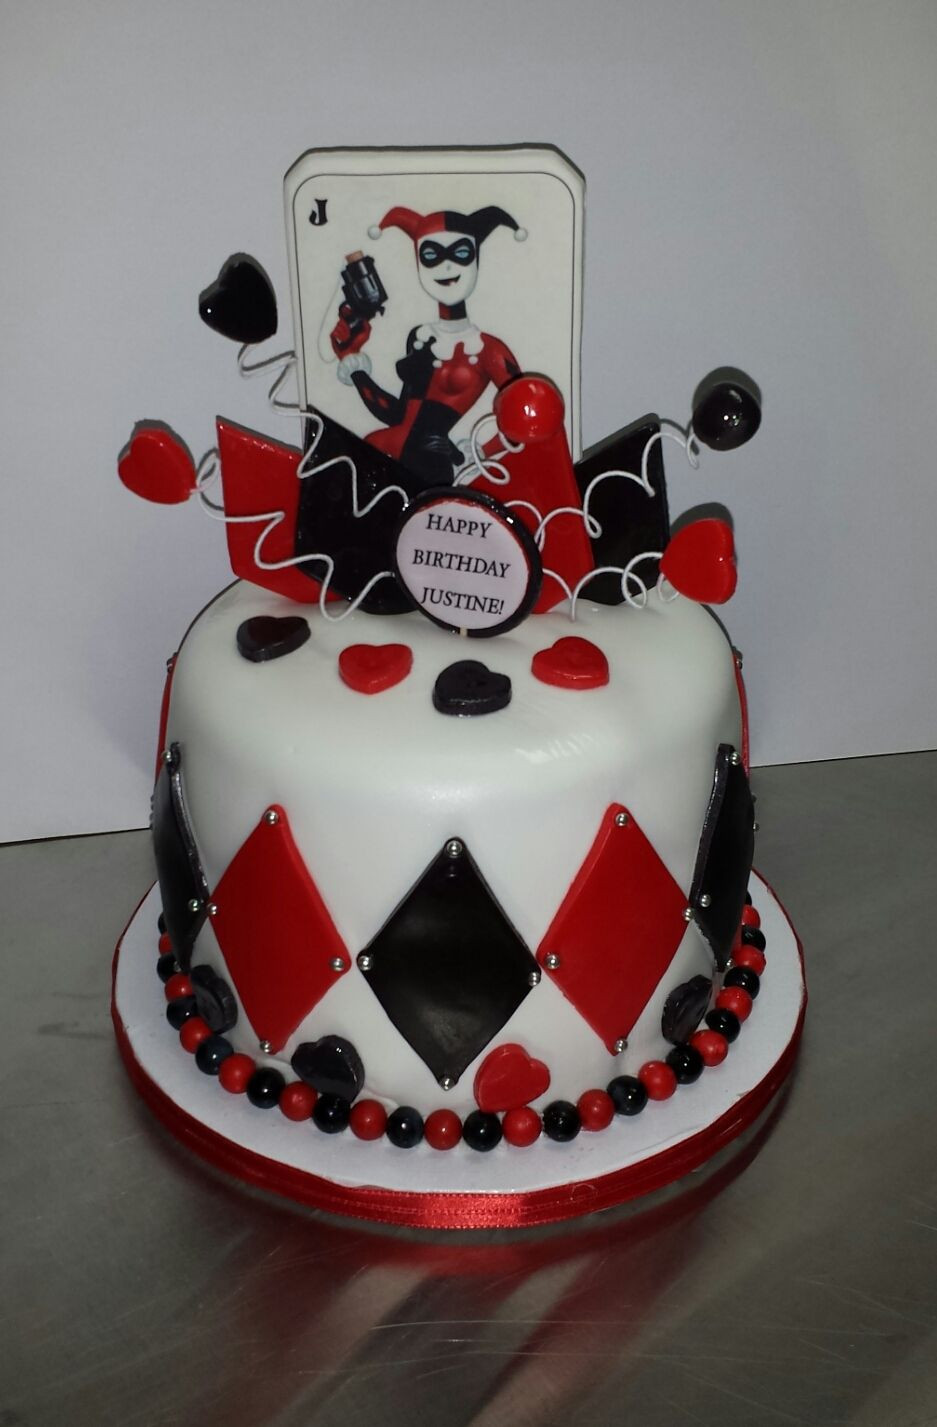 Best ideas about Harley Quinn Birthday Cake . Save or Pin Harley Quinn birthday cake haven t made a cake in a bit Now.